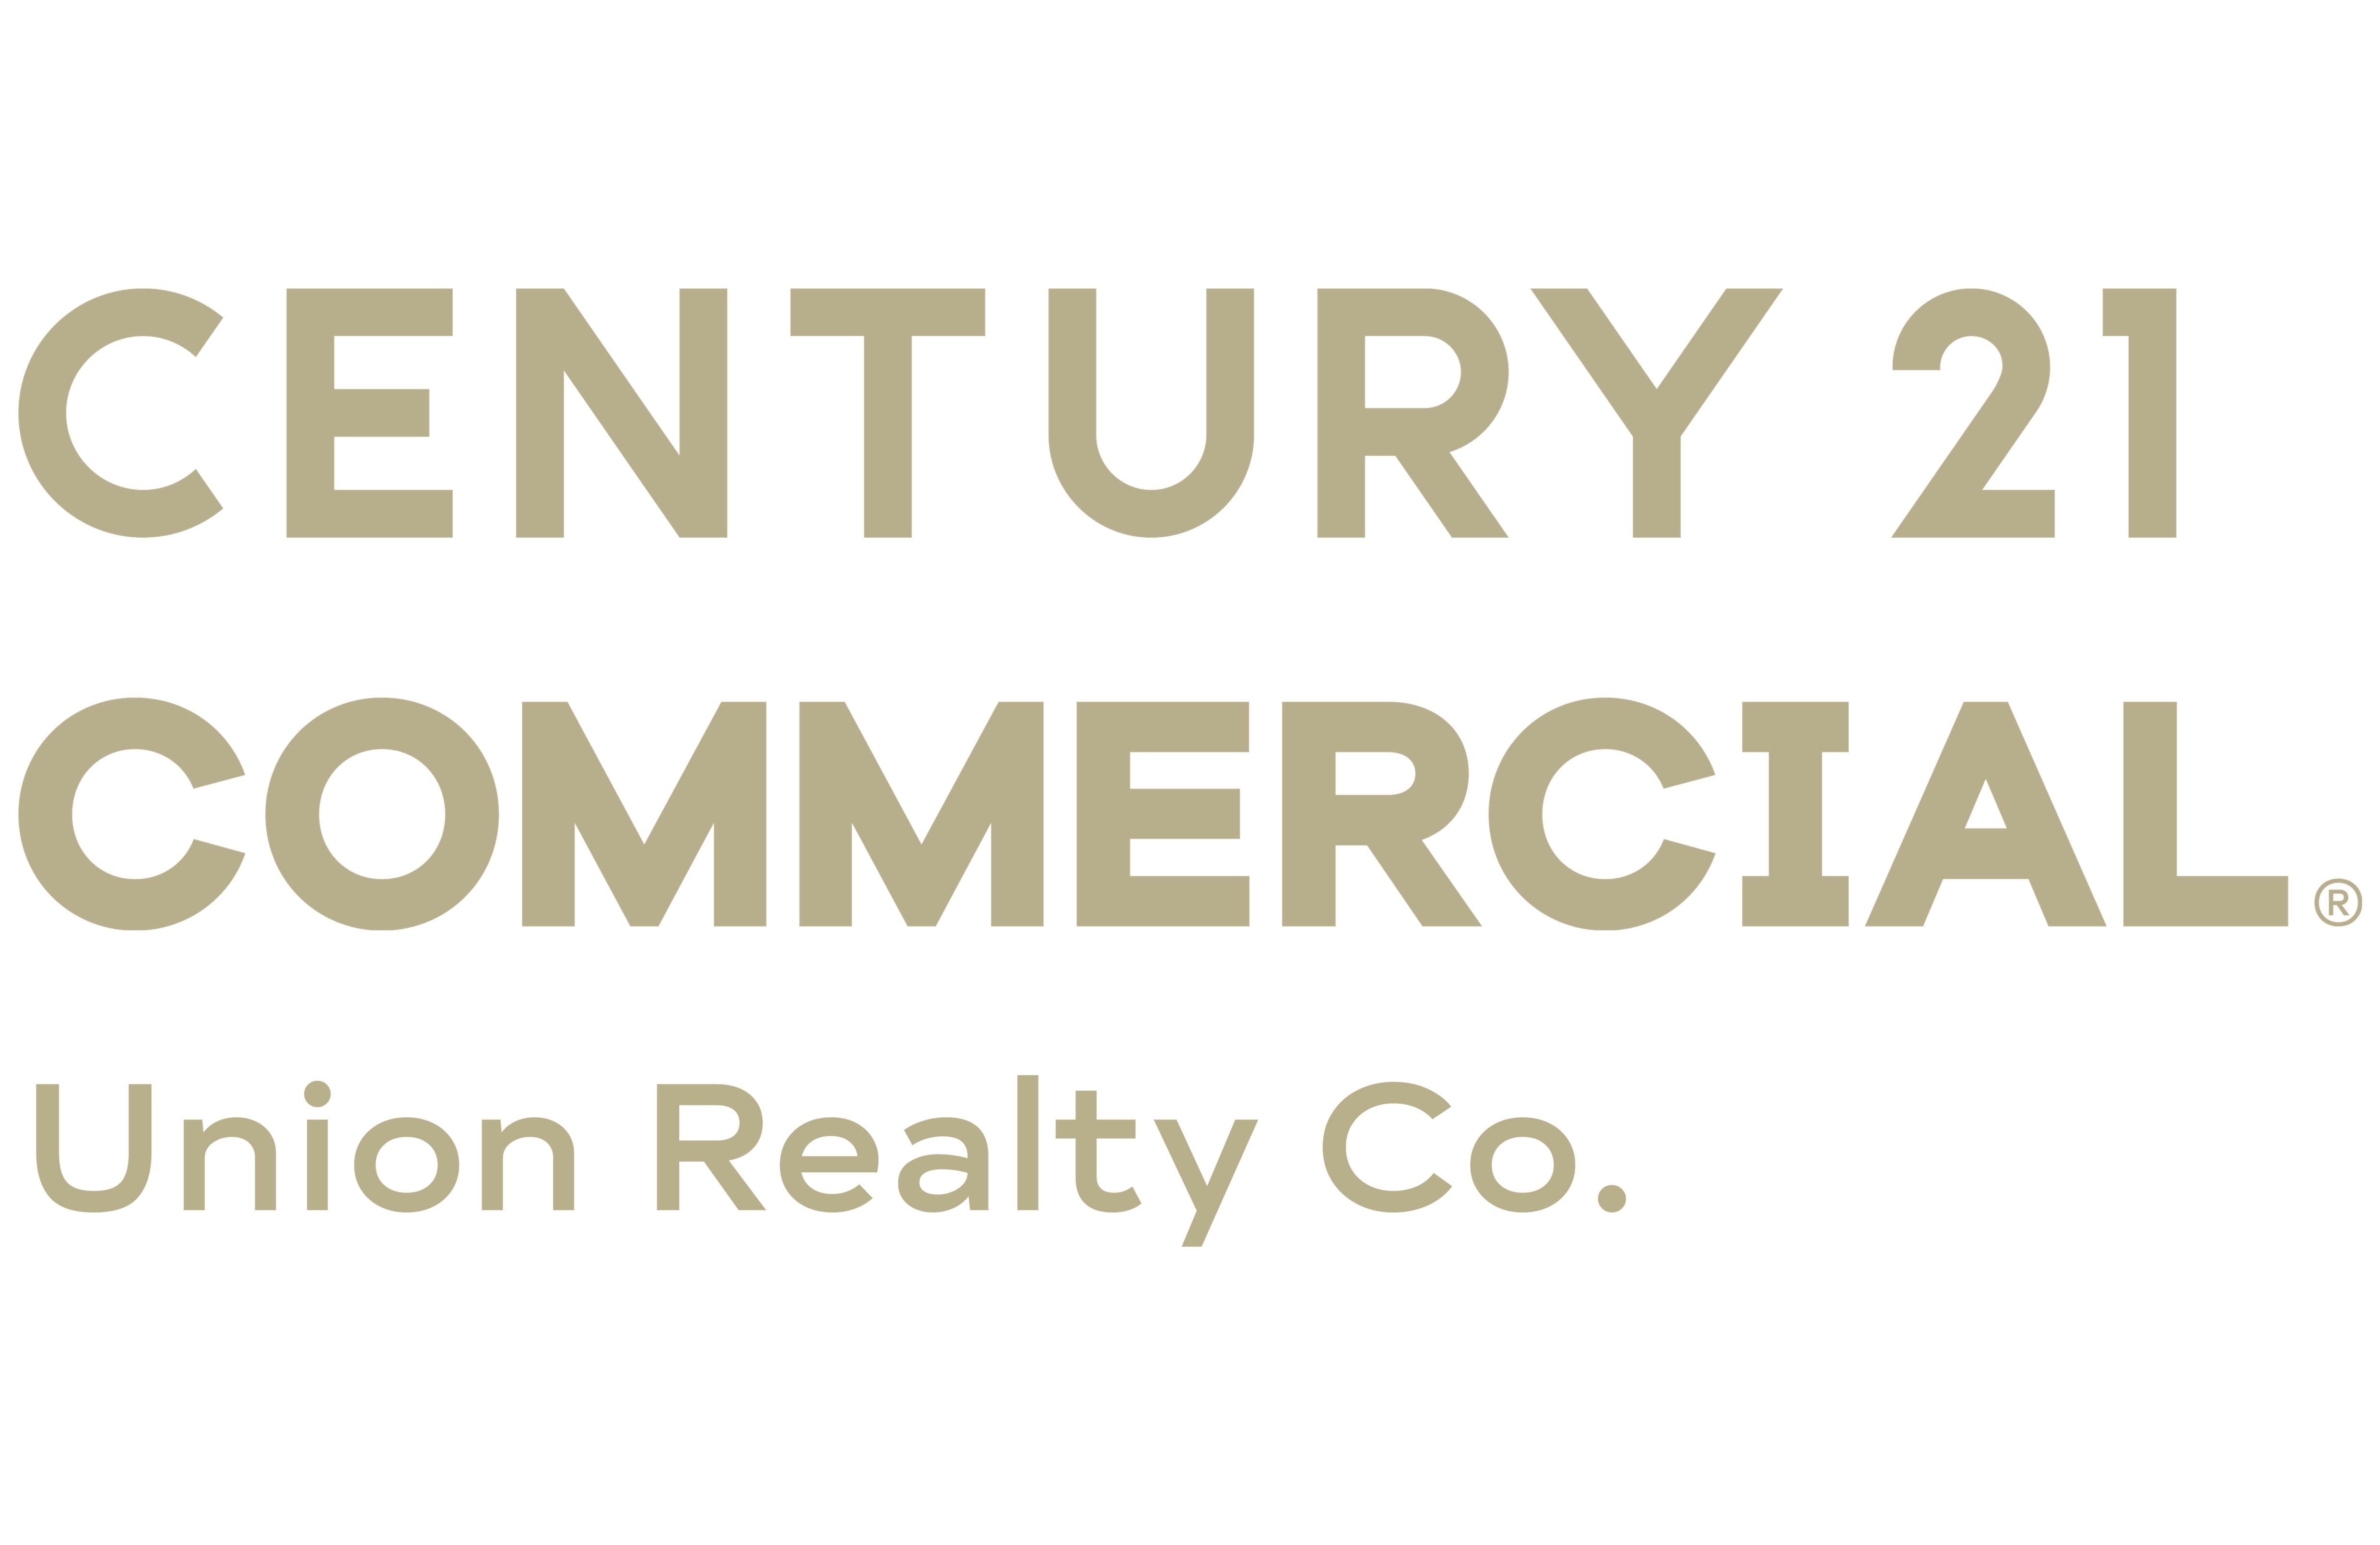 Steve Hwang of CENTURY 21 Union Realty Co. logo